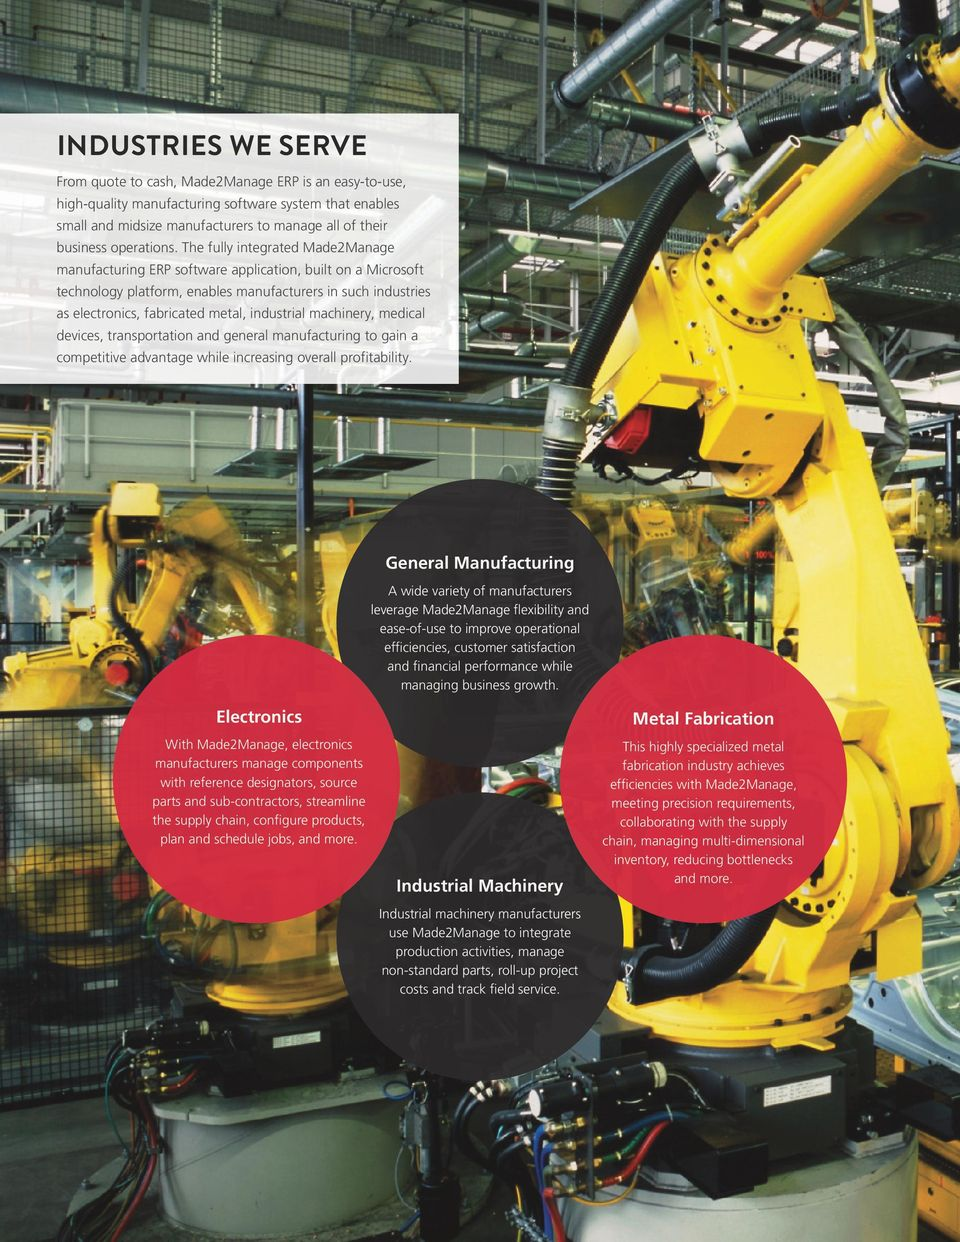 The fully integrated Made2Manage manufacturing ERP software application, built on a Microsoft technology platform, enables manufacturers in such industries as electronics, fabricated metal,